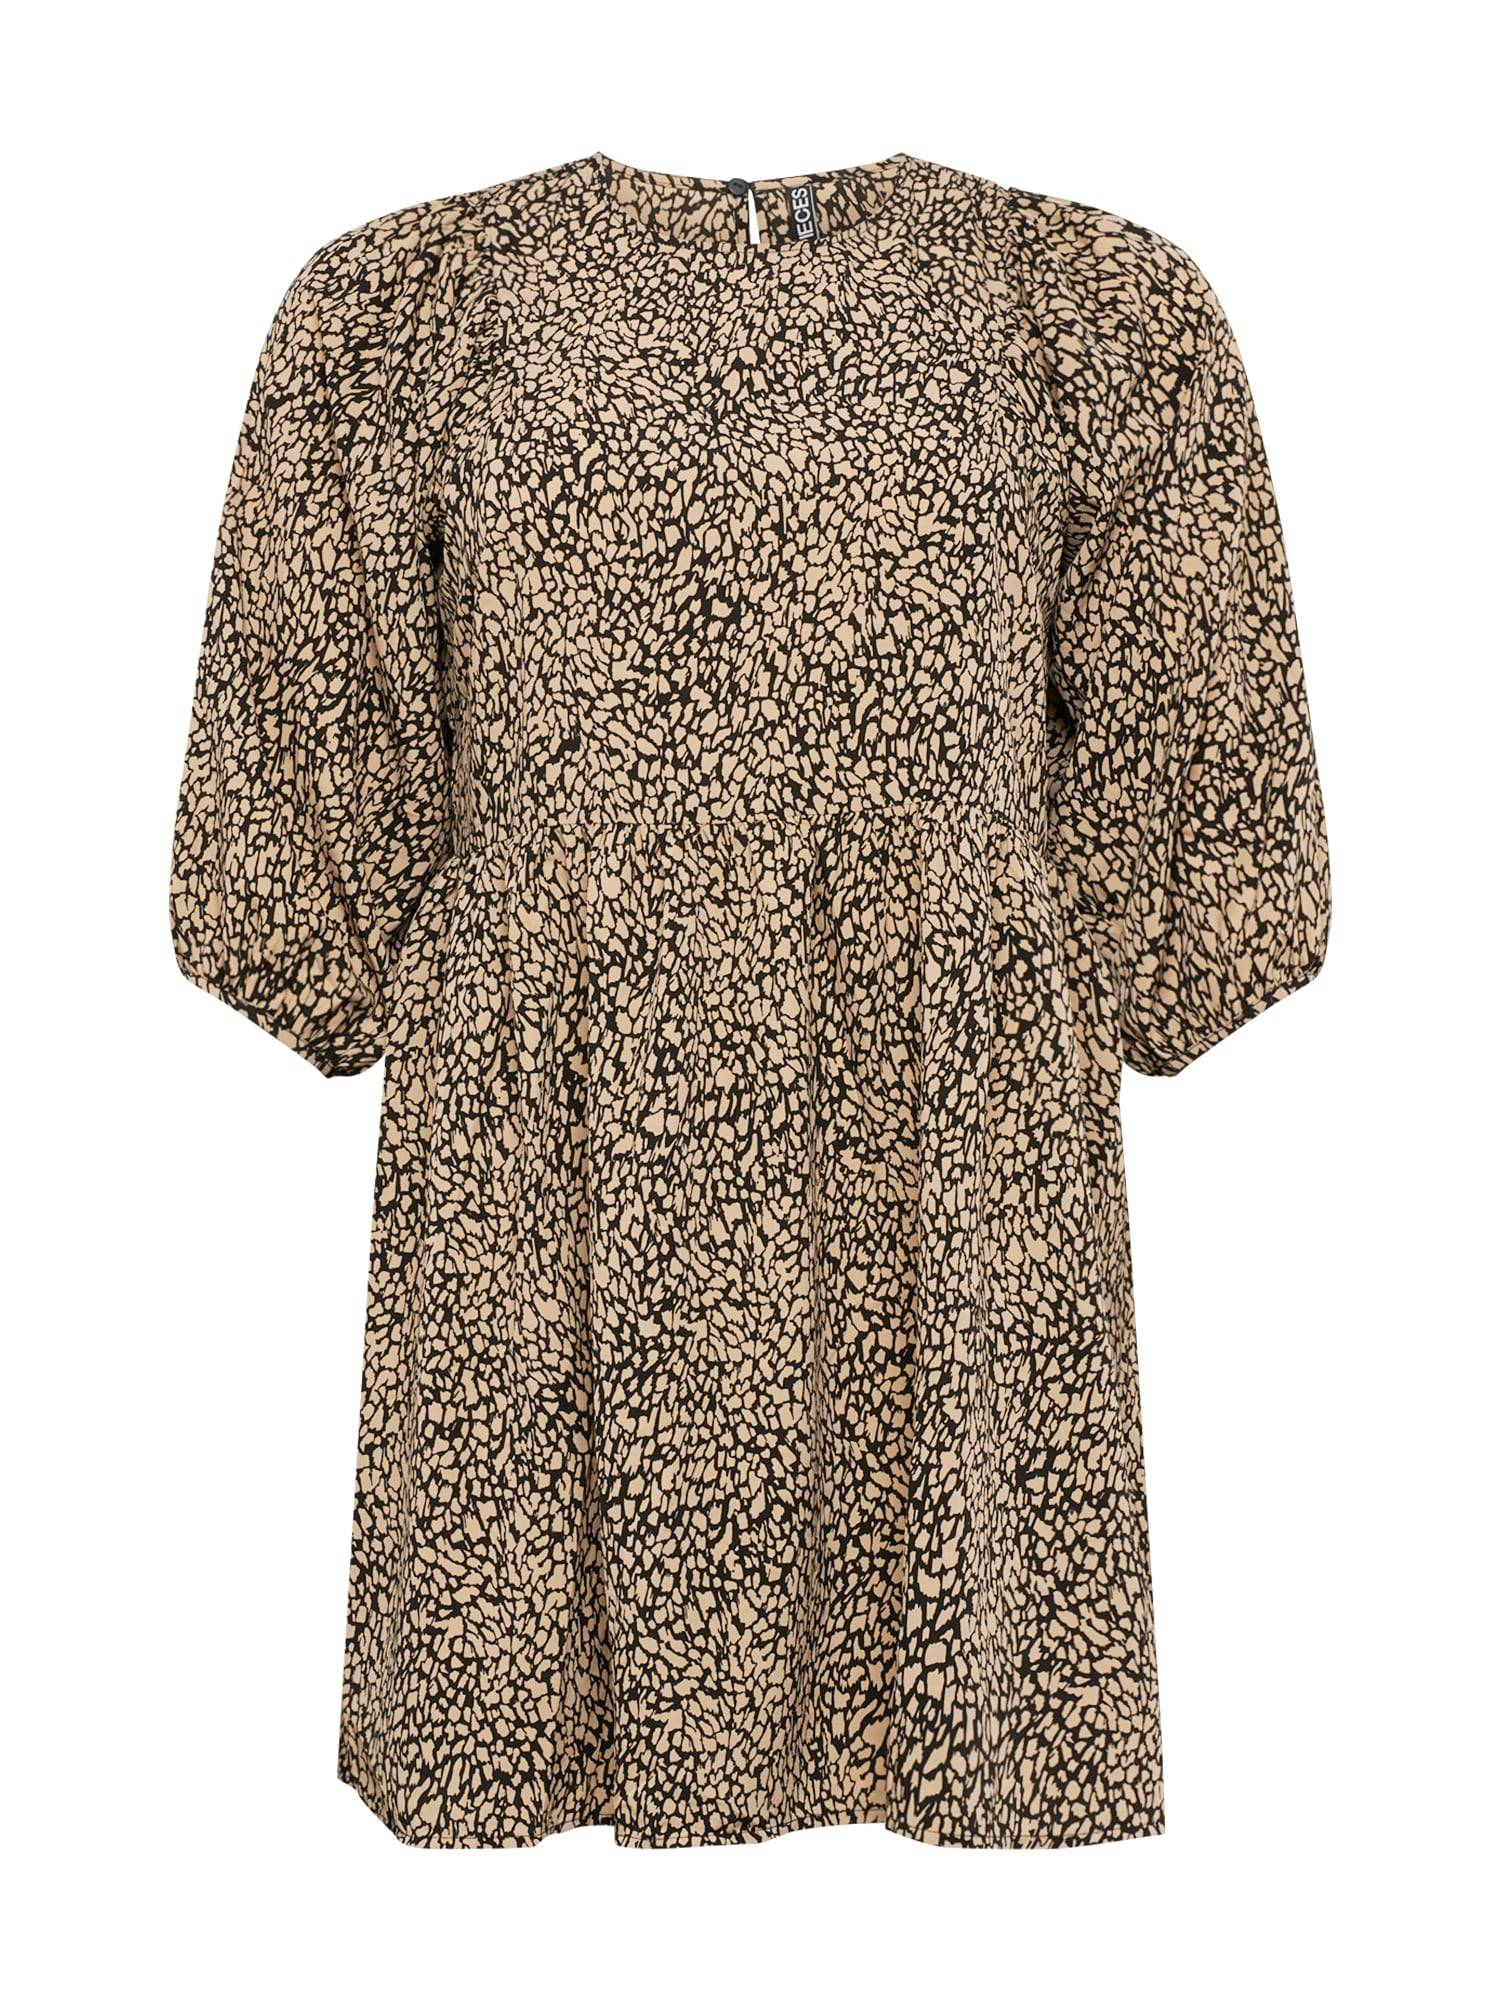 PIECES (Curve) Robe 'GILBERTA'  - Beige - Taille: 52 - female